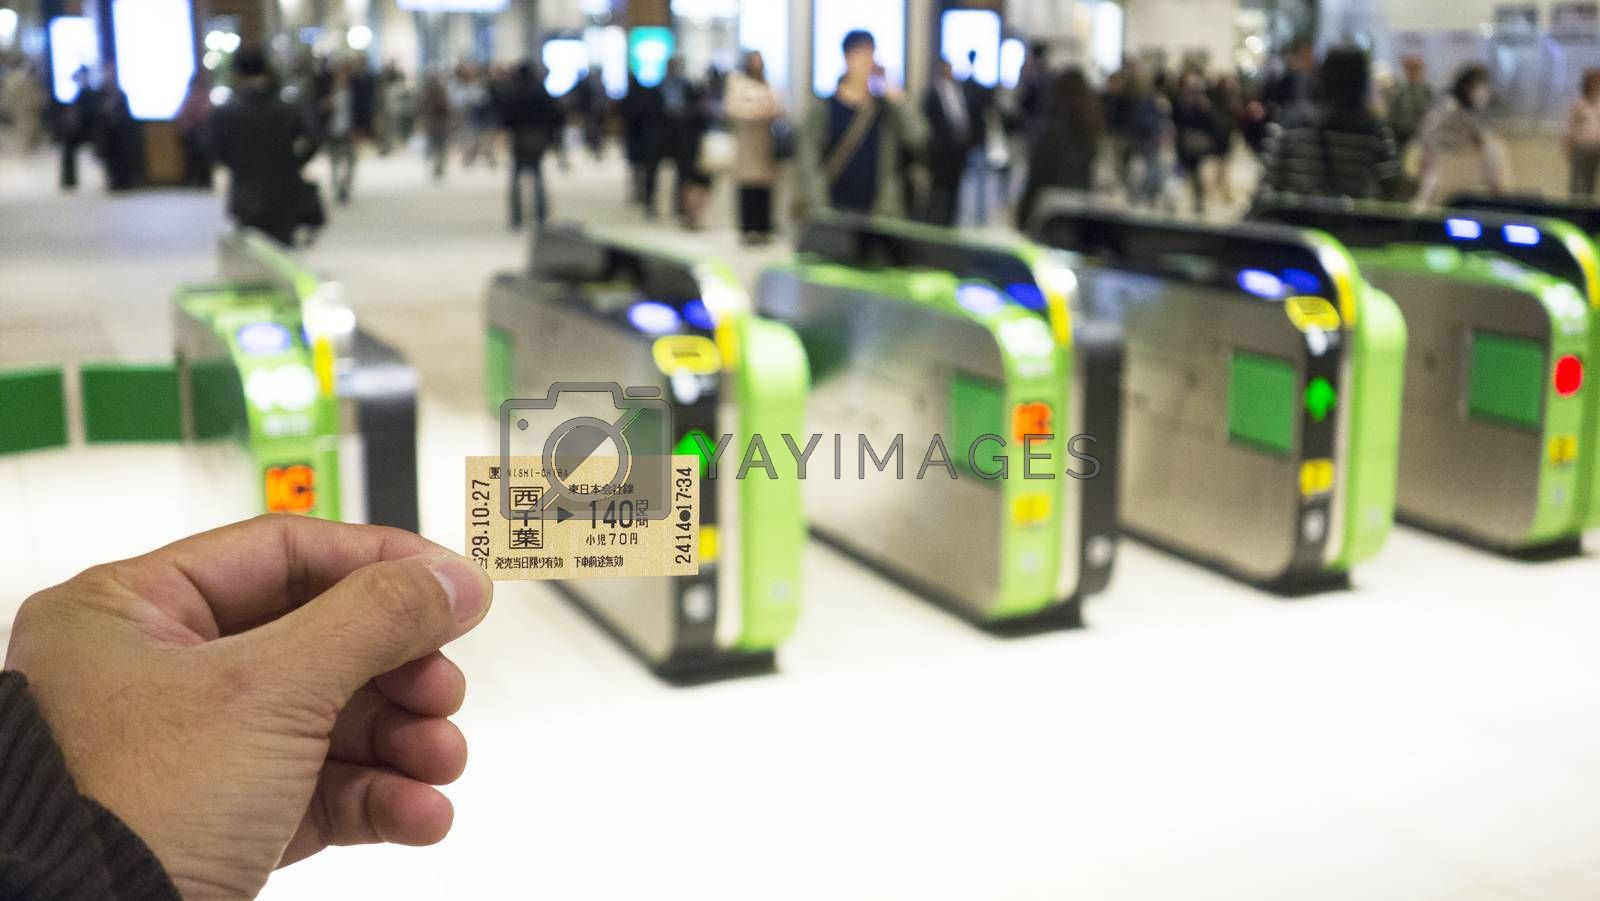 Chiba Japan 29 October 2017 - The tourist use ticket of train at at railway station gate.